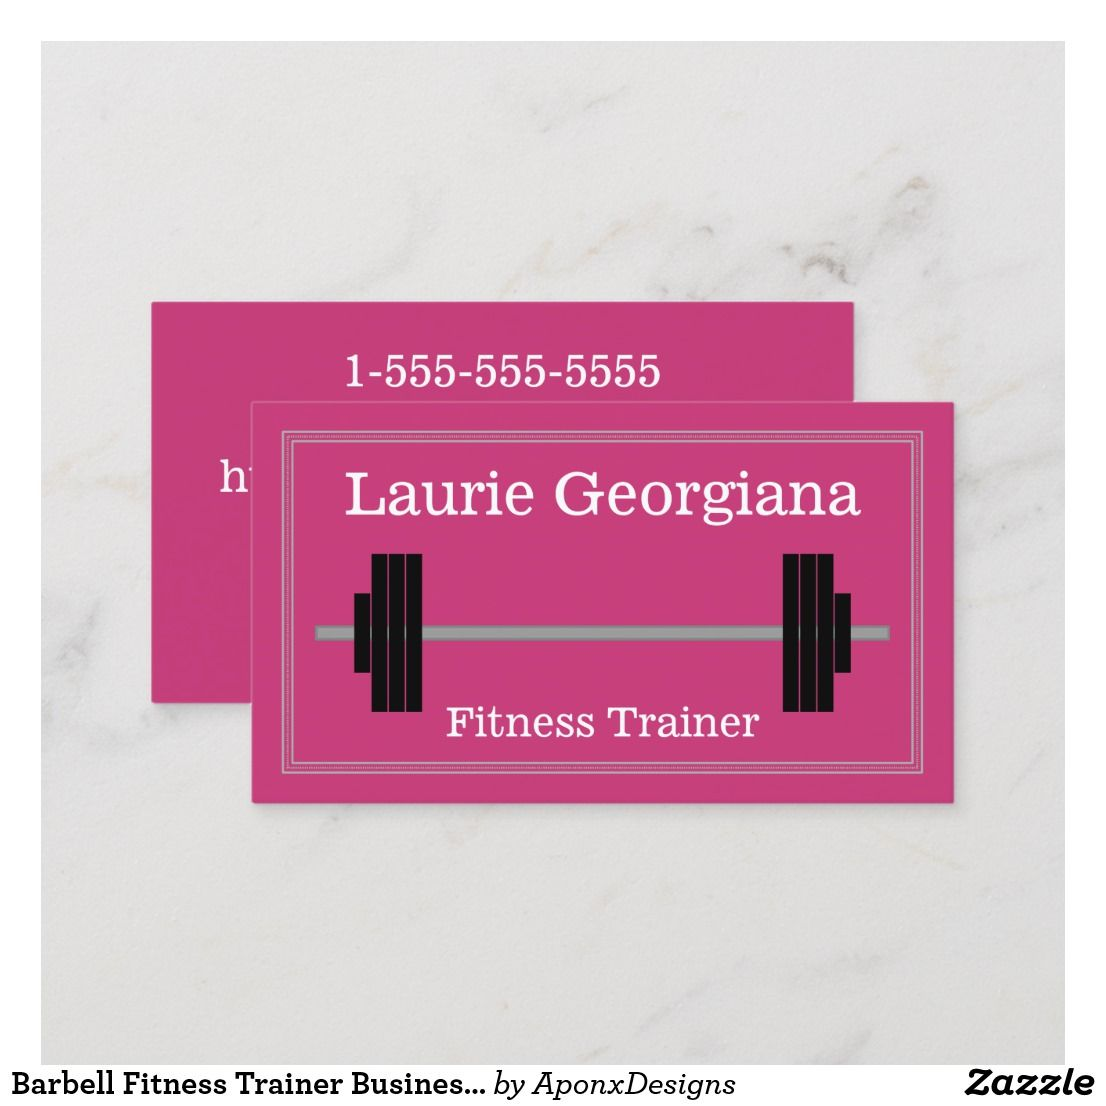 Barbell Fitness Trainer Business Card